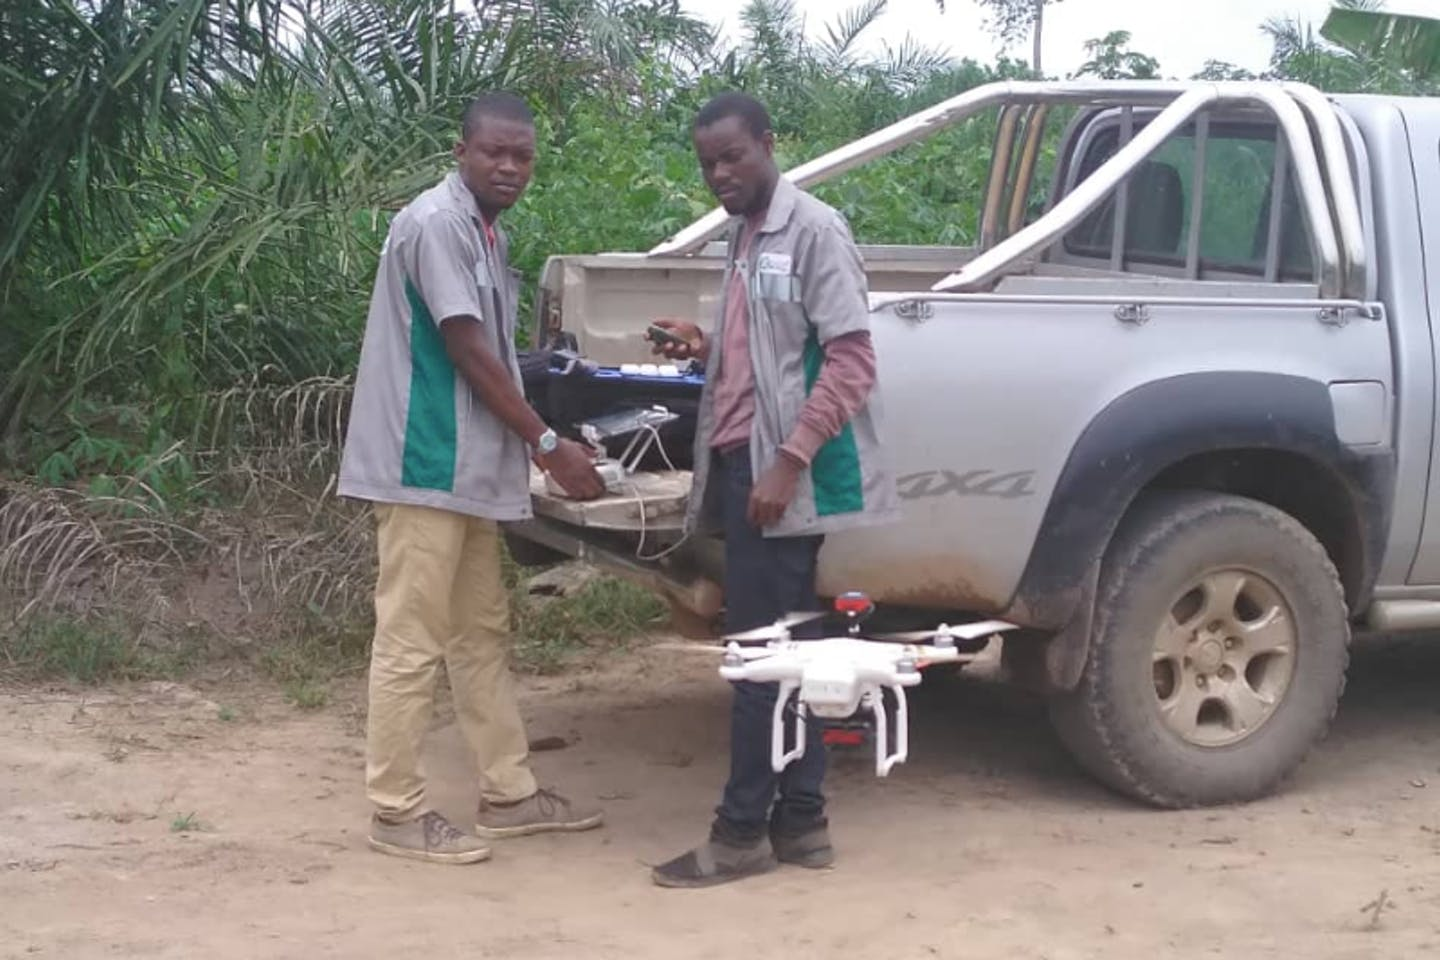 drones agriculture2